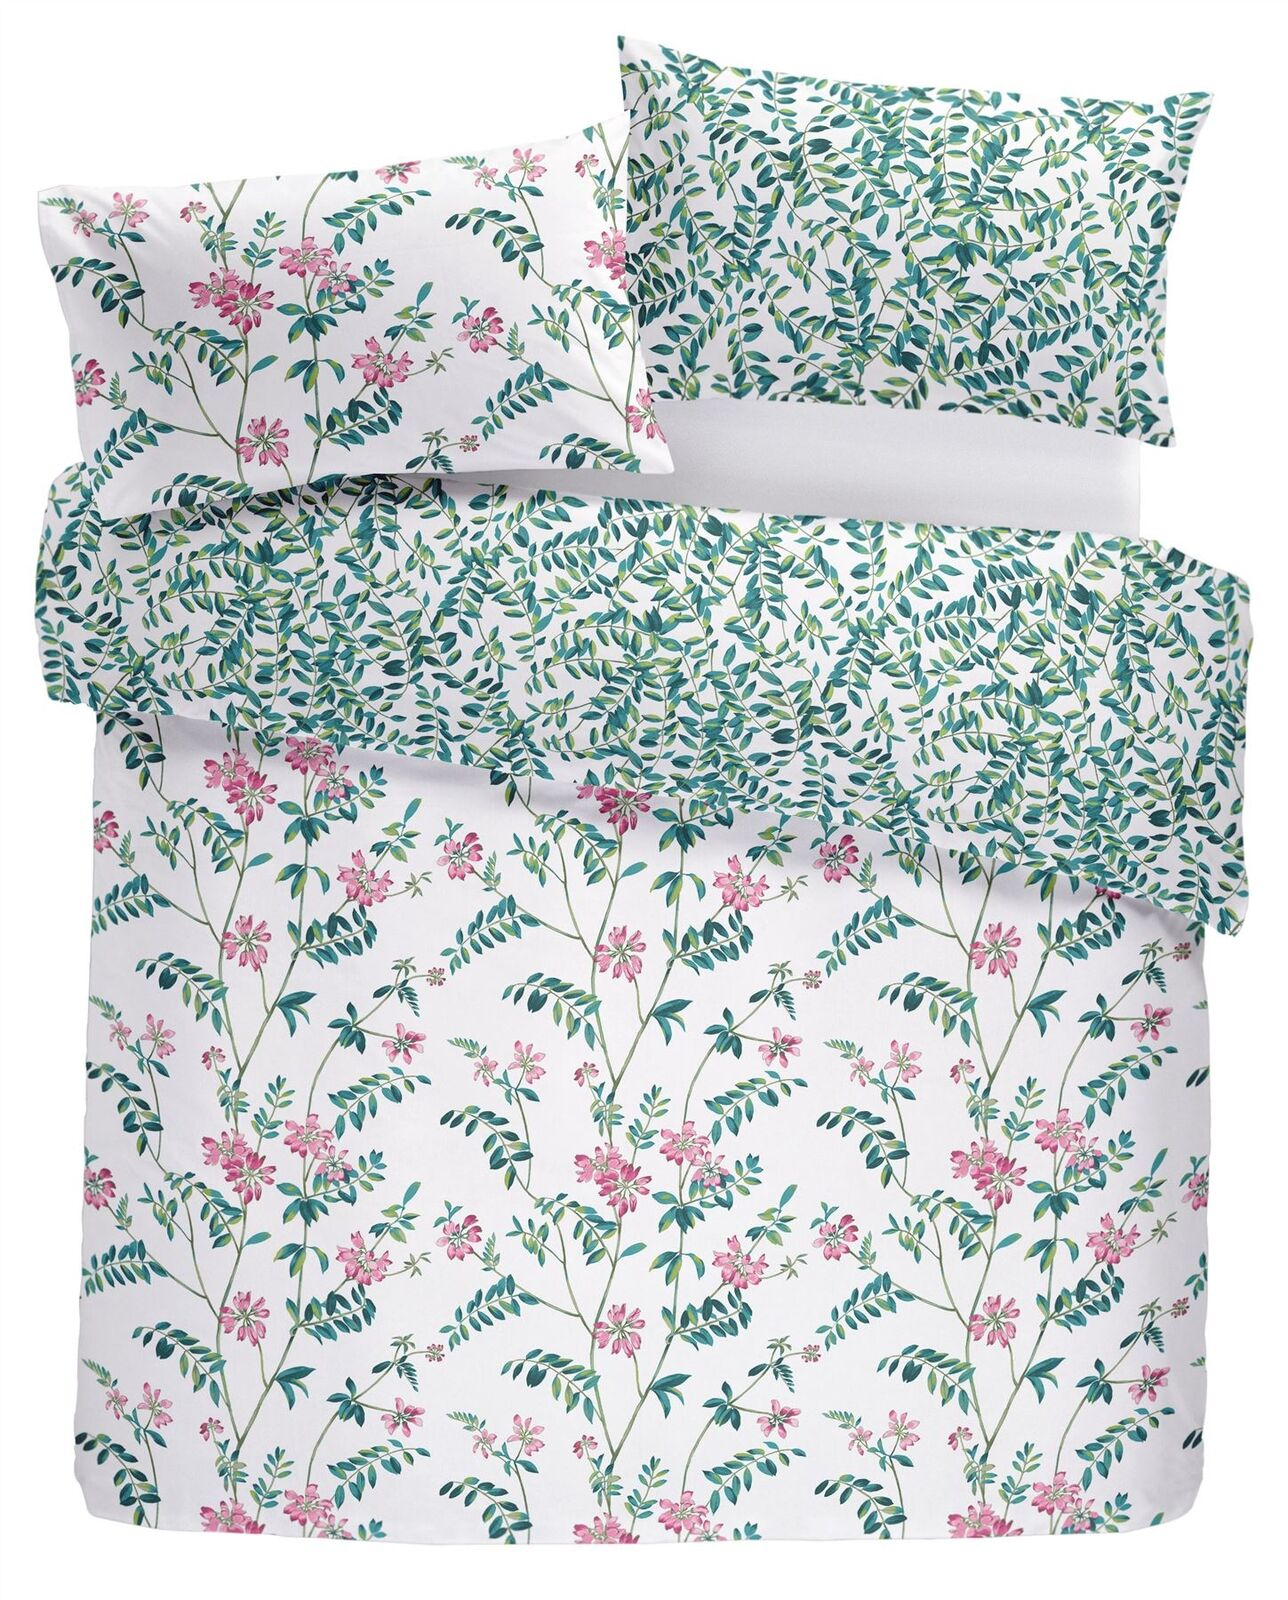 HAND-DRAWN STYLE FLORAL FLOWERS LEAVES TEAL SUPER KING 6 PIECE BEDDING SET